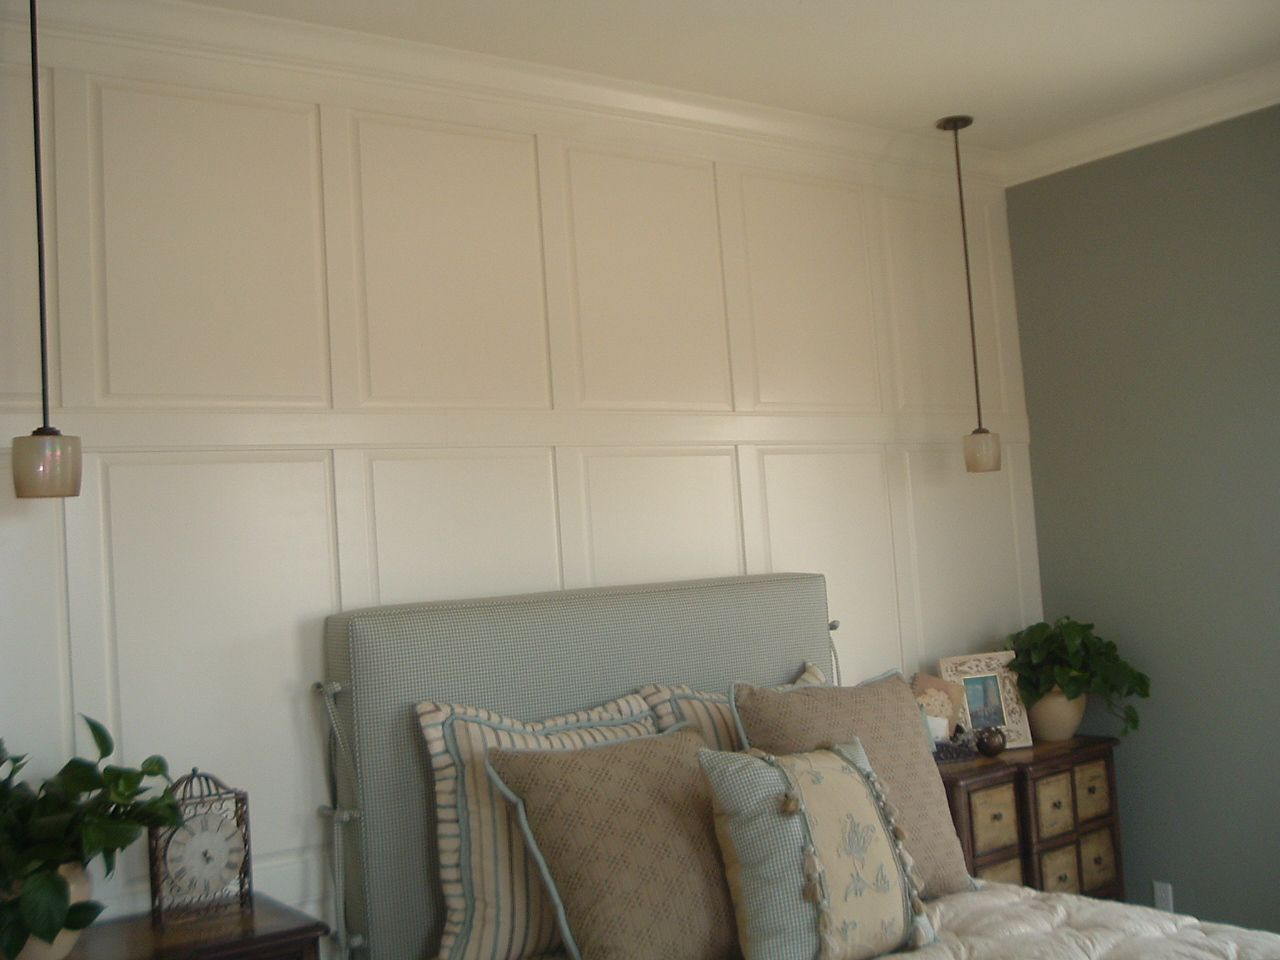 Bedroom Paneling Wainscoting Wall Panels Google Search Ideas For The